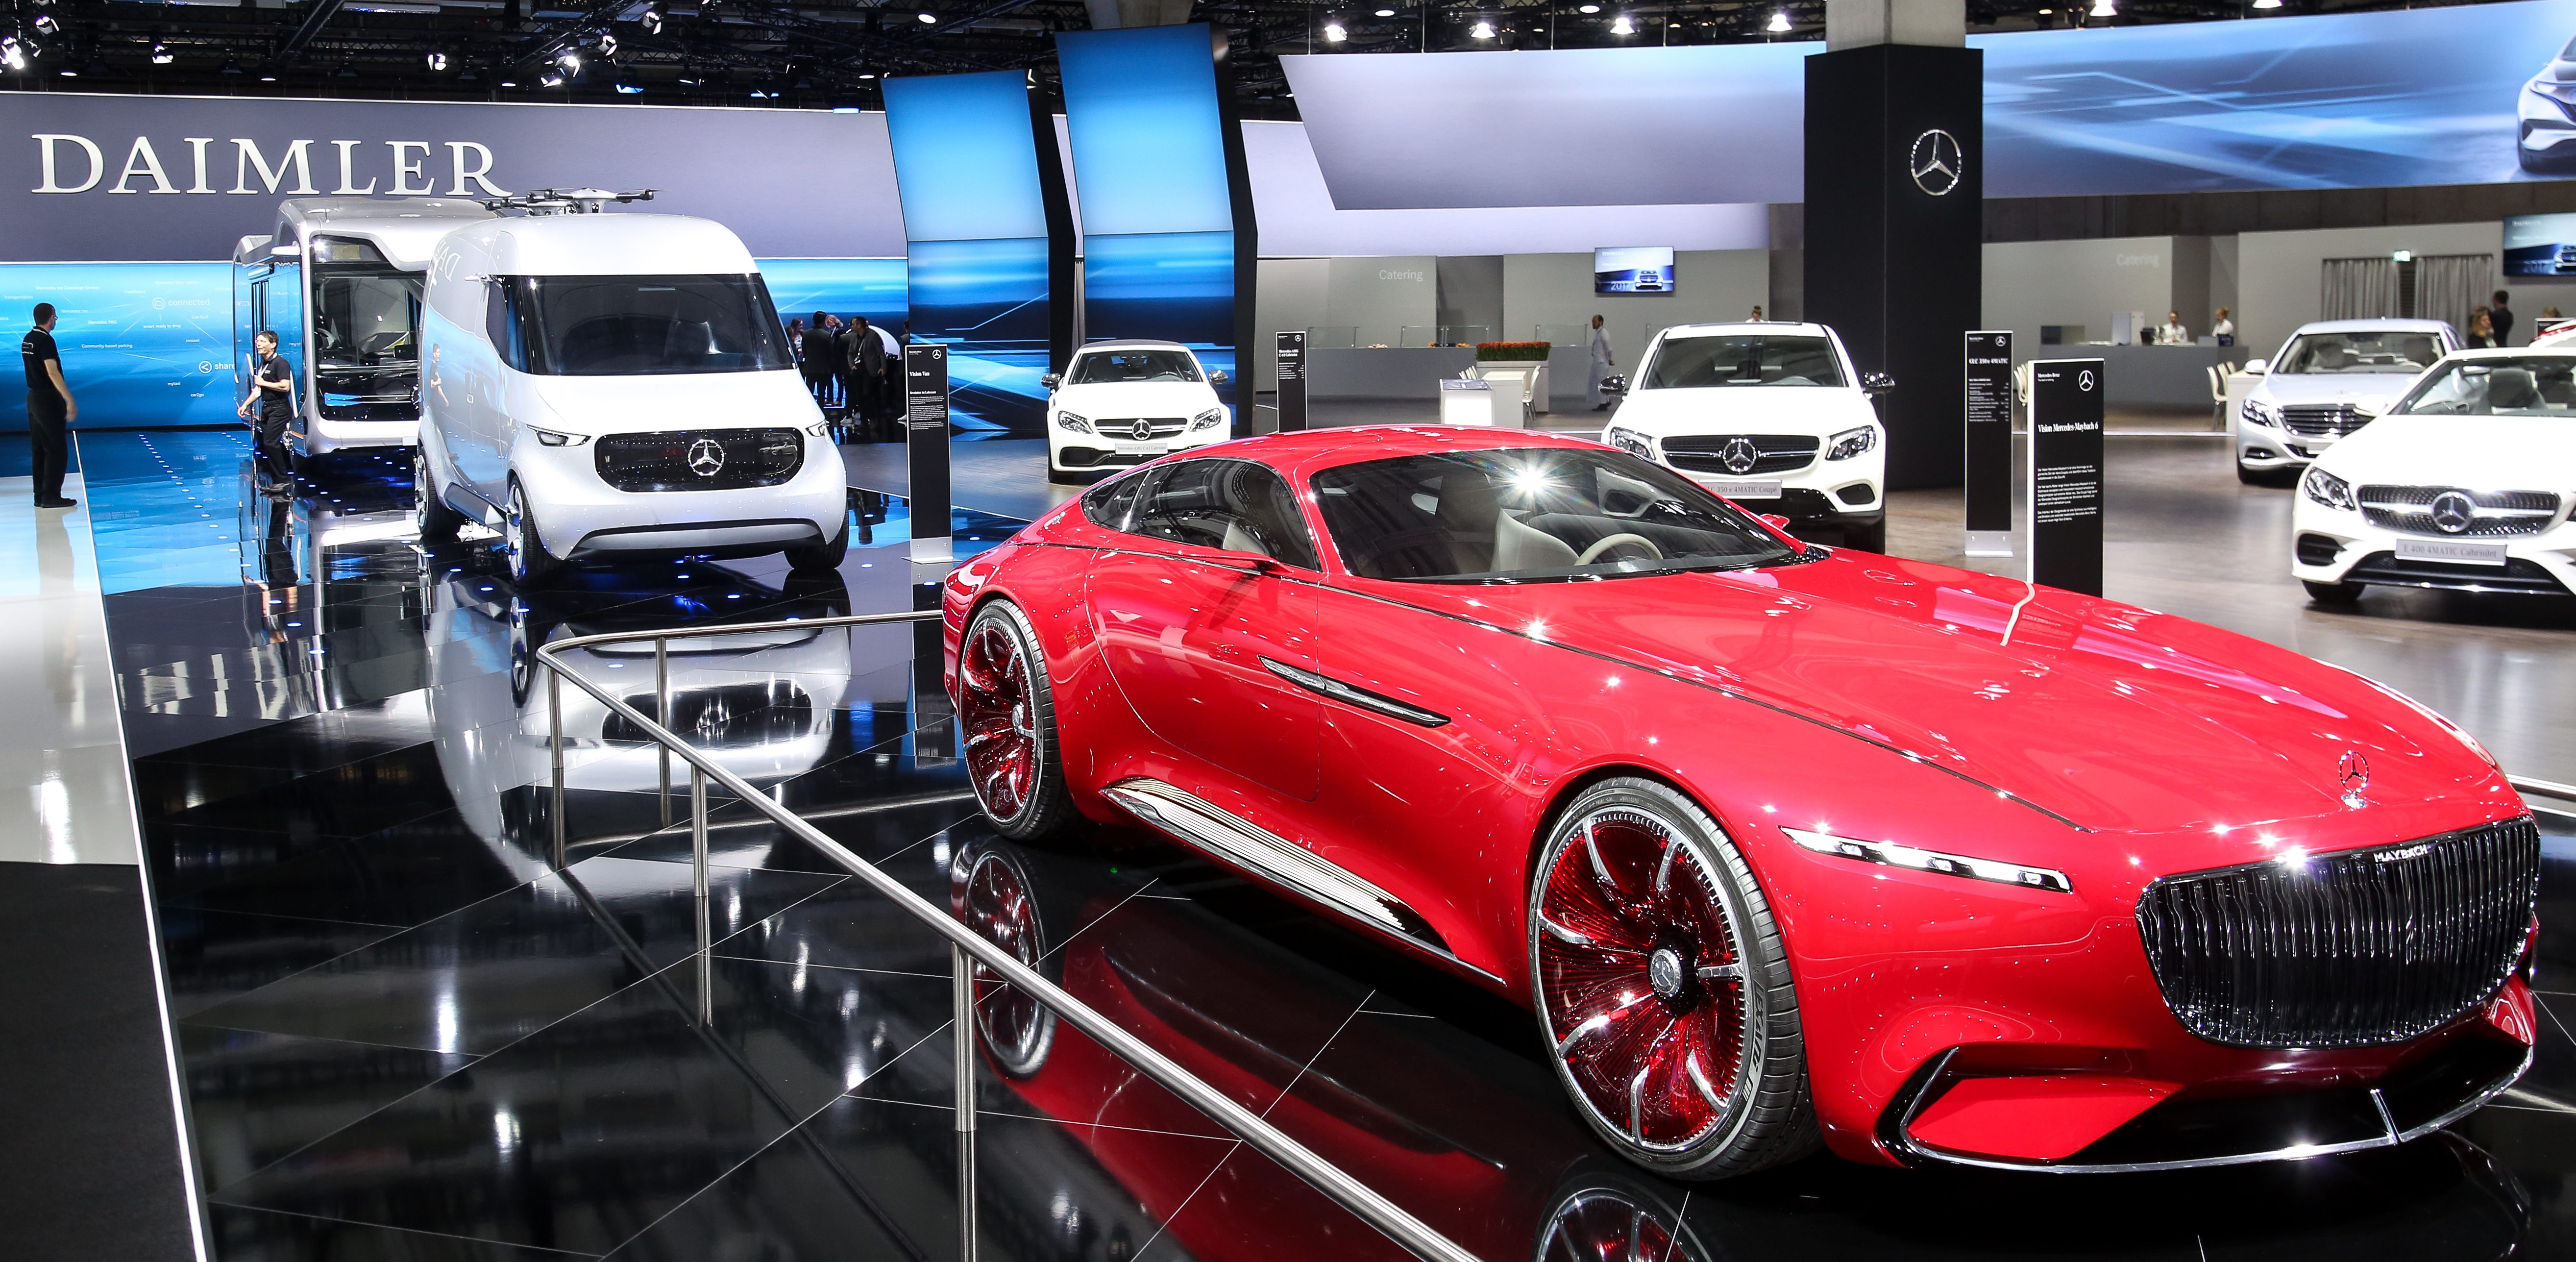 Daimler announces acceleration of electric car plans by 3 years ...